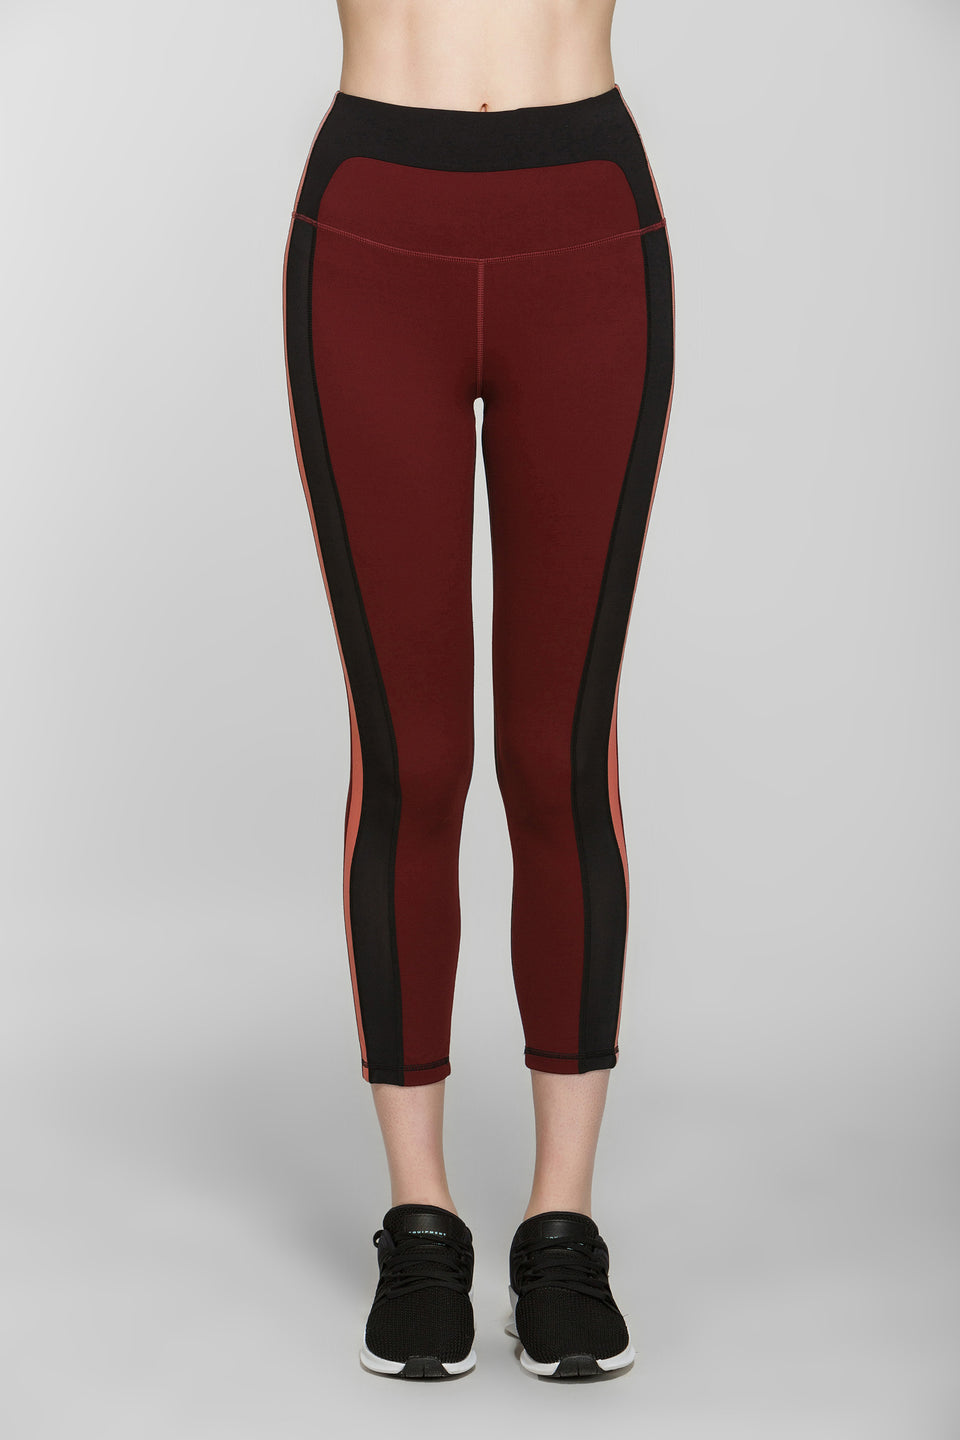 Geneva Leggings